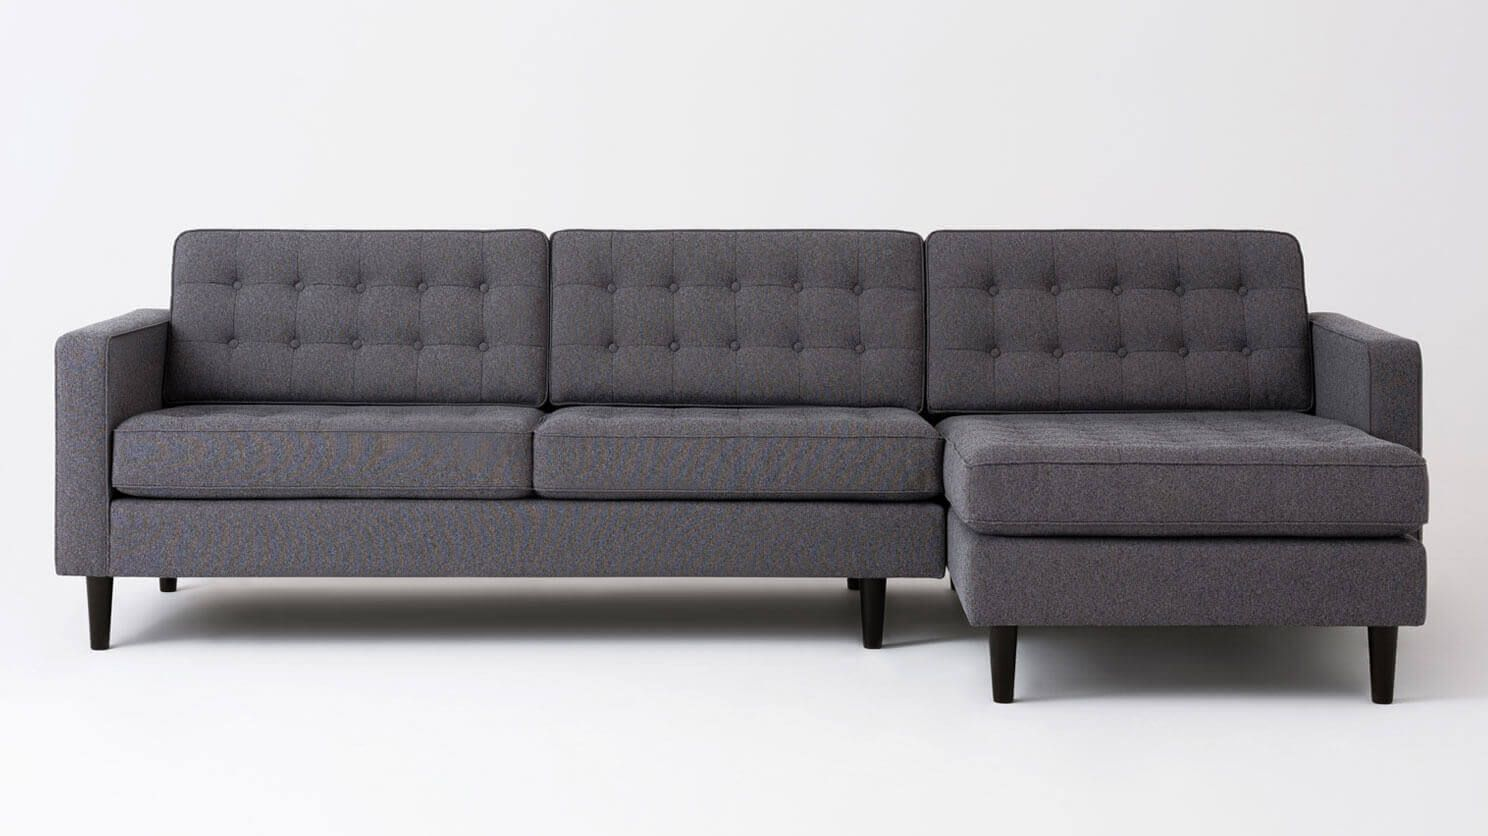 Reverie Apartment 2 Piece Sectional Sofa With Chaise Fabric